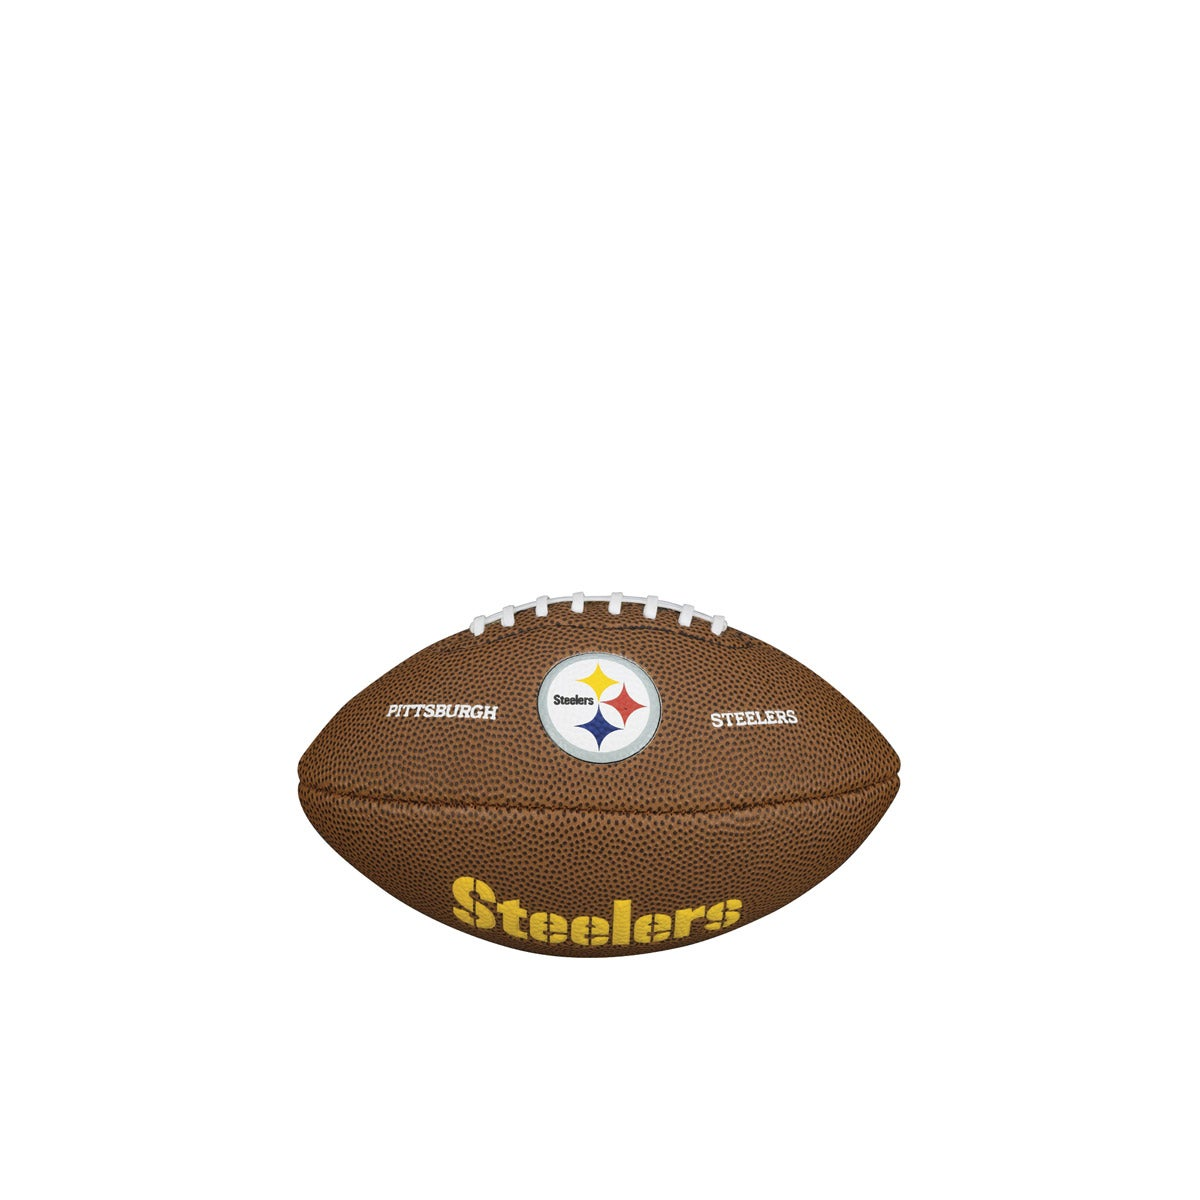 ? NFL TEAM LOGO MINI SIZE FOOTBALL - PITTSBURGH STEELERS